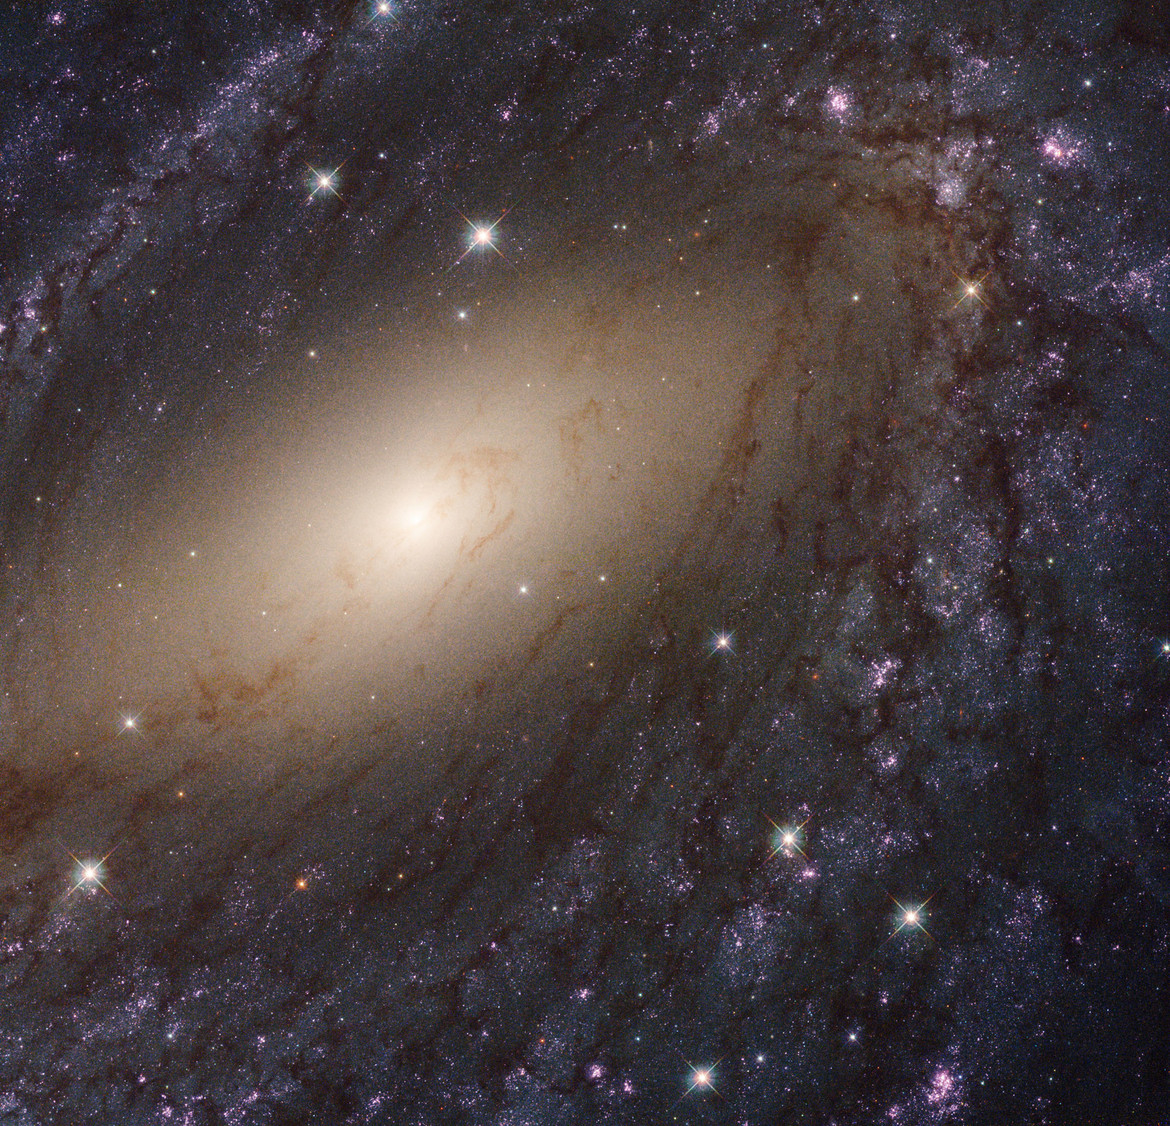 NGC 6744, a patchy spiral galaxy with lots of young, massive stars in it. Credit: NASA, ESA, and the LEGUS team